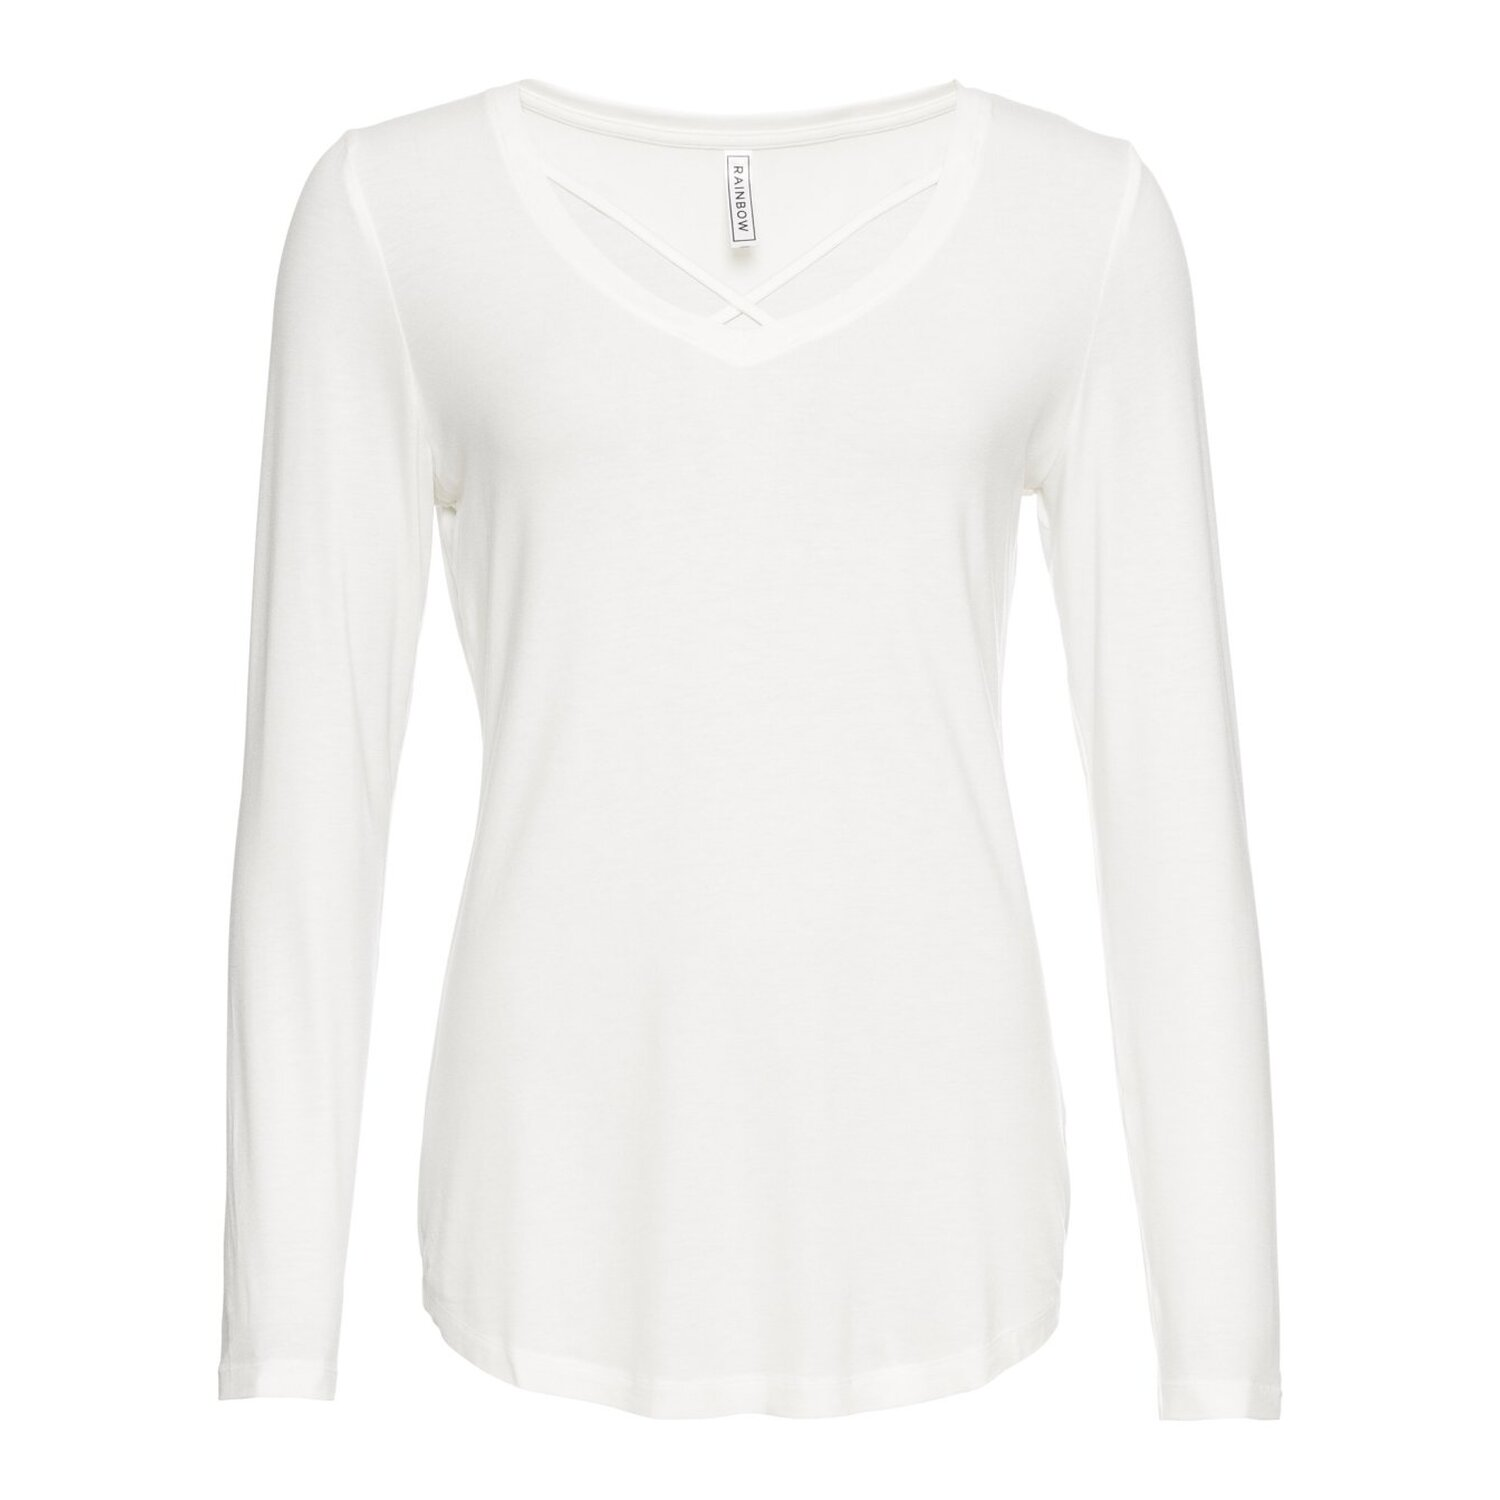 Damen Langarmshirt, in Wollweiß